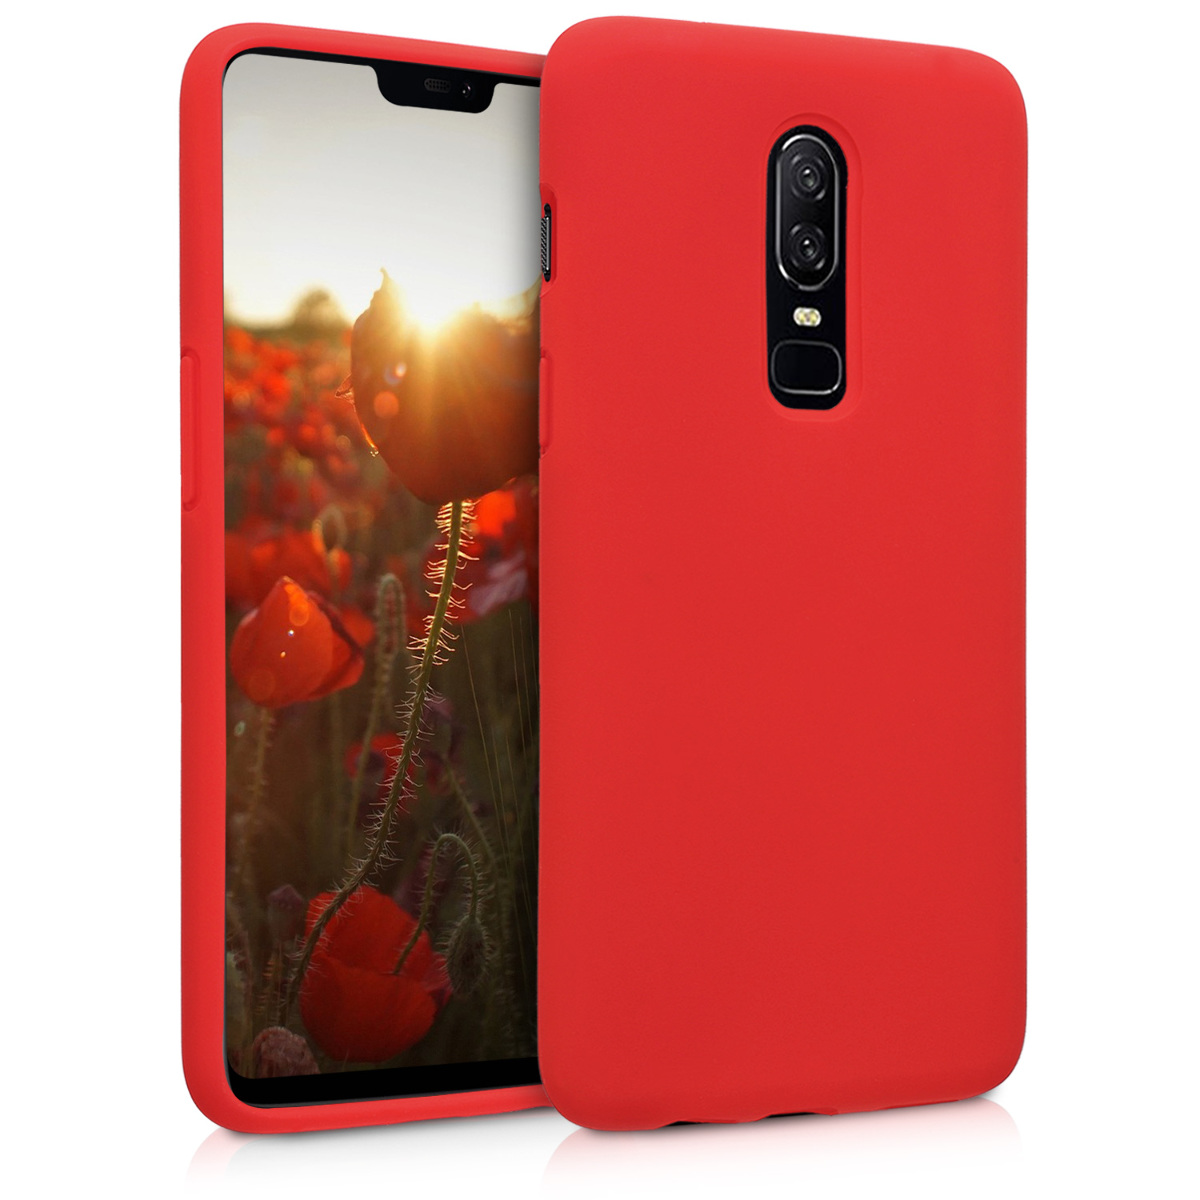 KW Θήκη Σιλικόνης OnePlus 6 - Soft Flexible Rubber Protective Cover - Red - (46122.09)